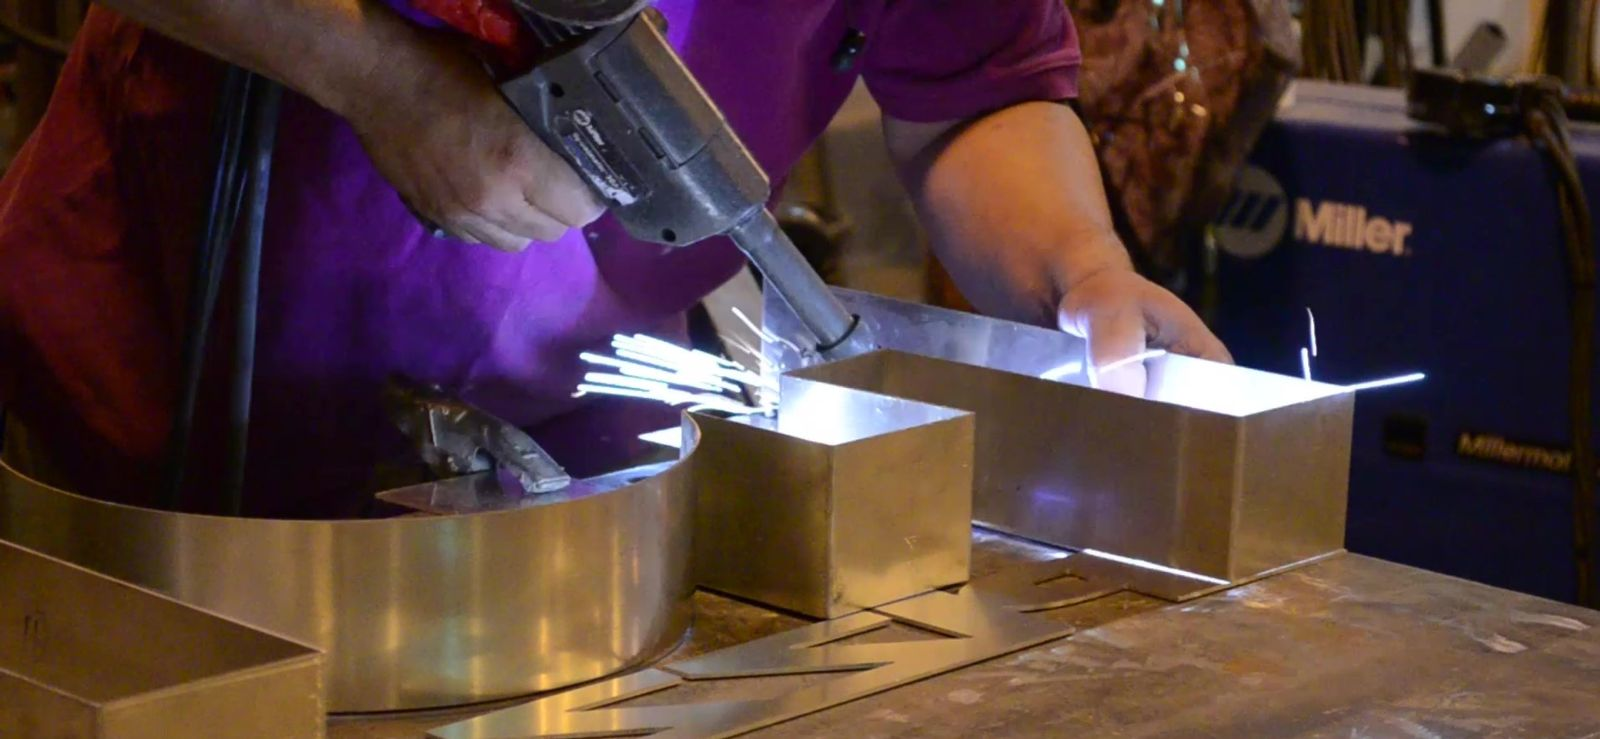 Female Fabricator Constructing Metal Sign Using Specialized Tools